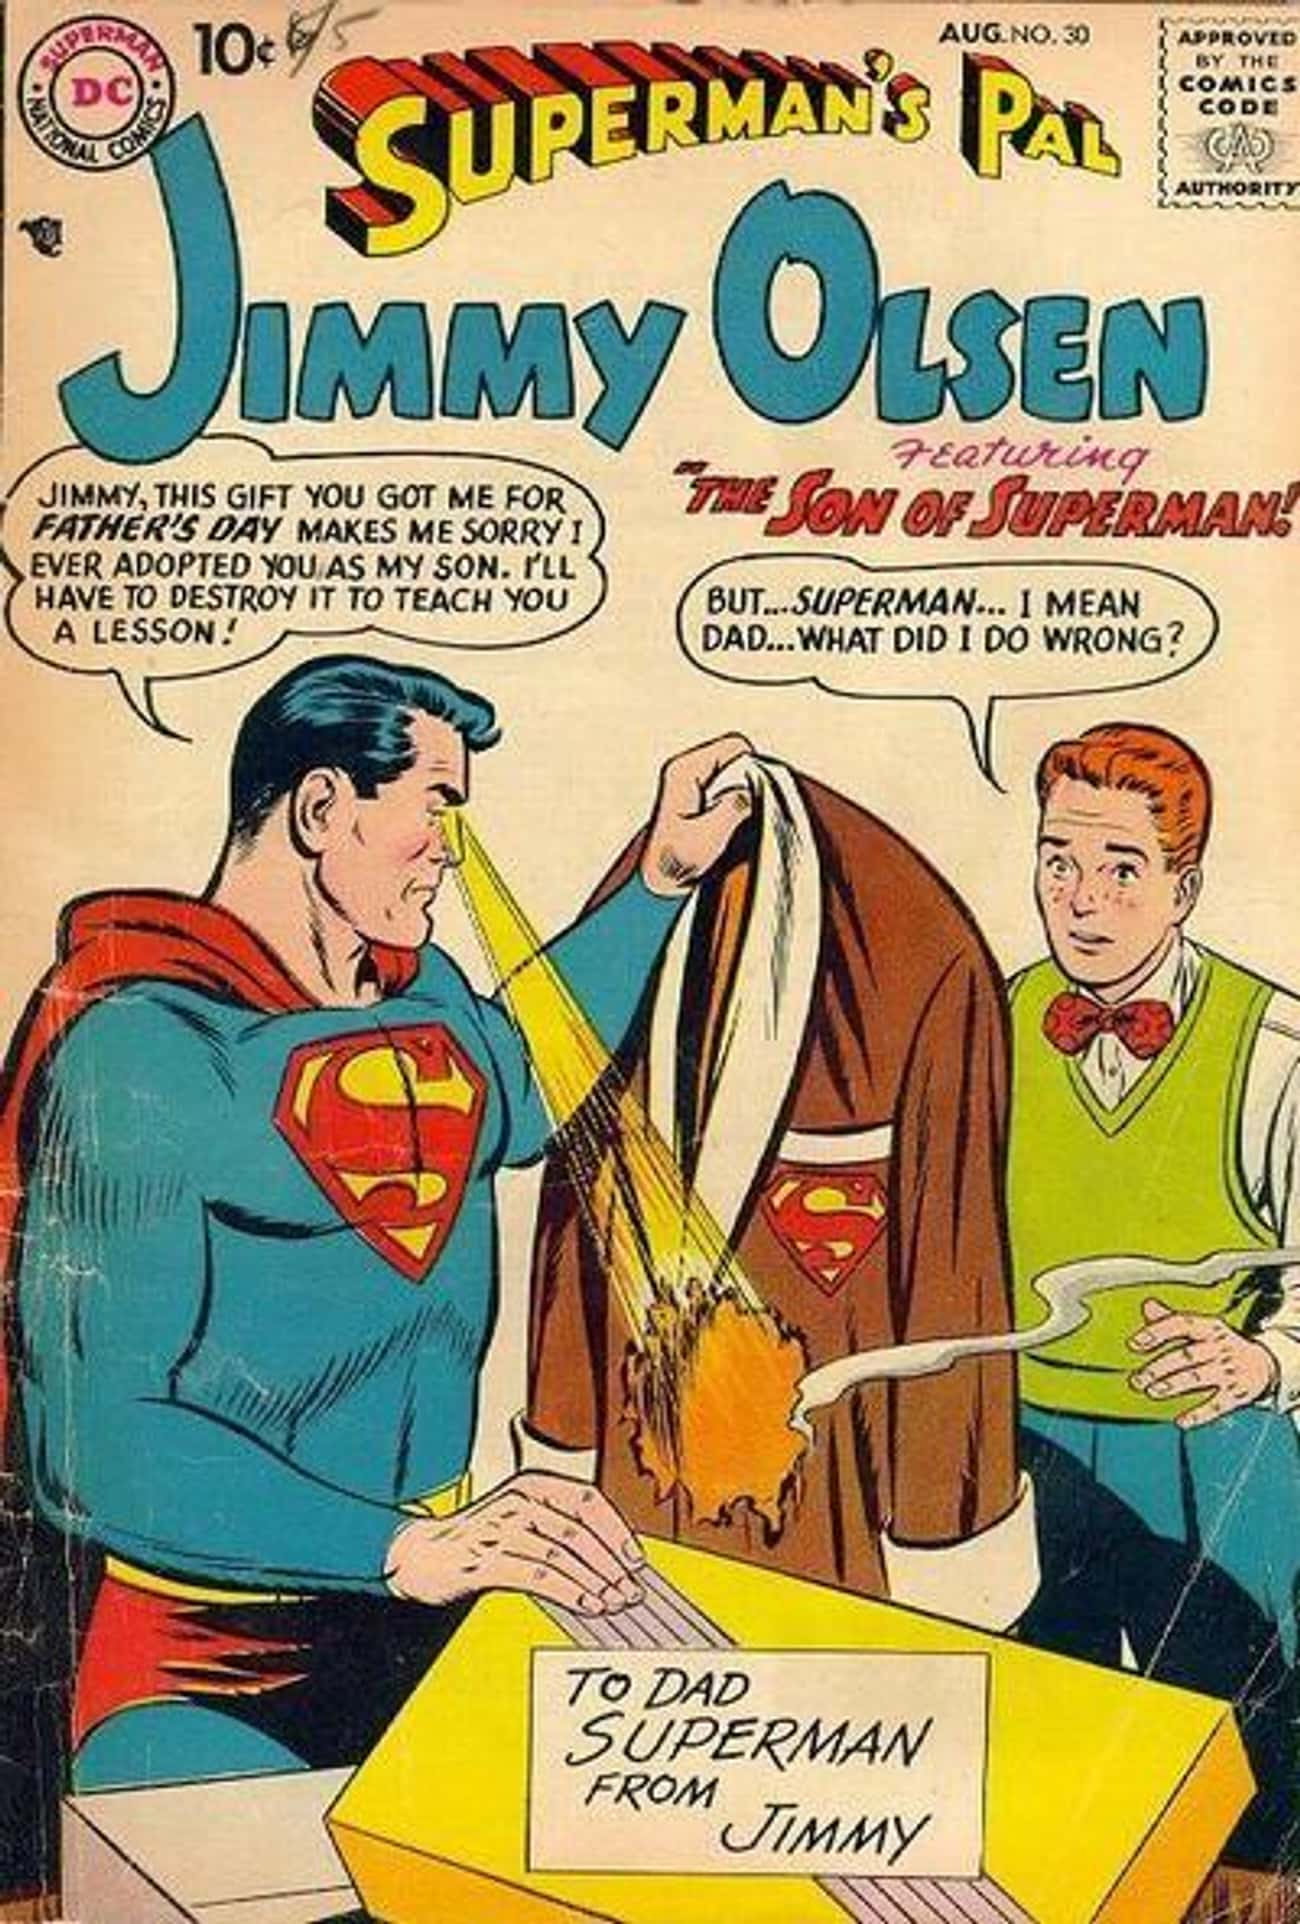 Superman Adopts And Then Mistreats Jimmy Olsen In 'Superman's Pal, Jimmy Olsen' #30